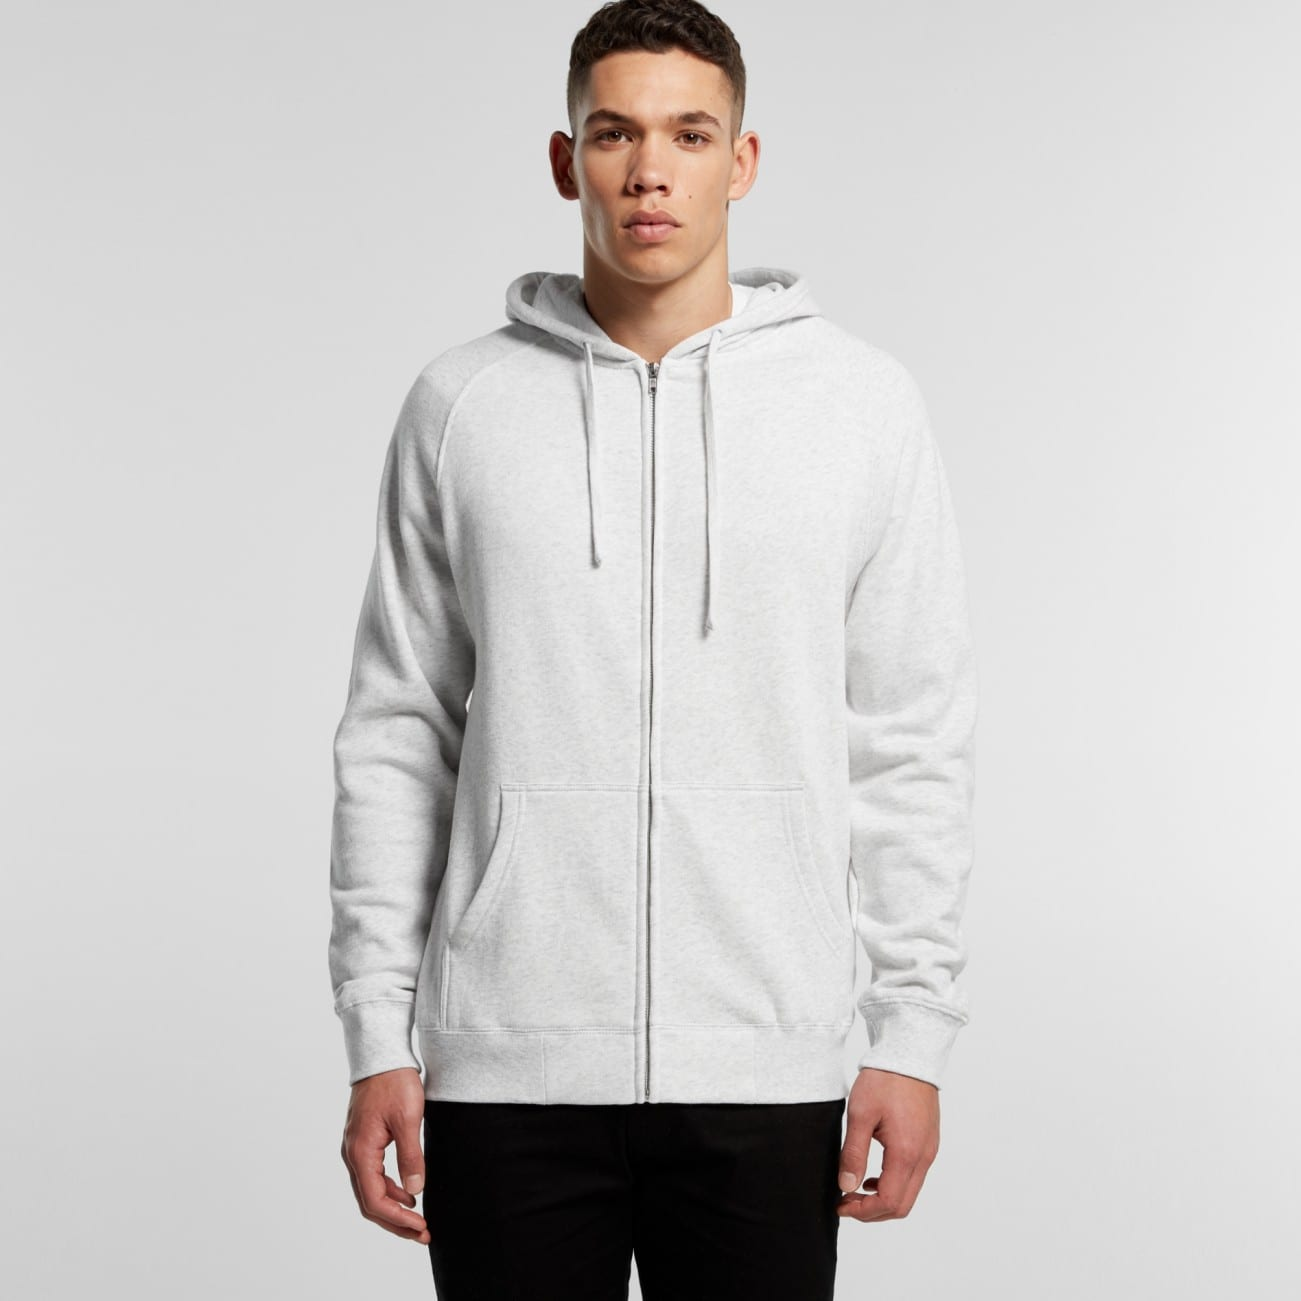 AS 5103 Men's Offical Zip Hood